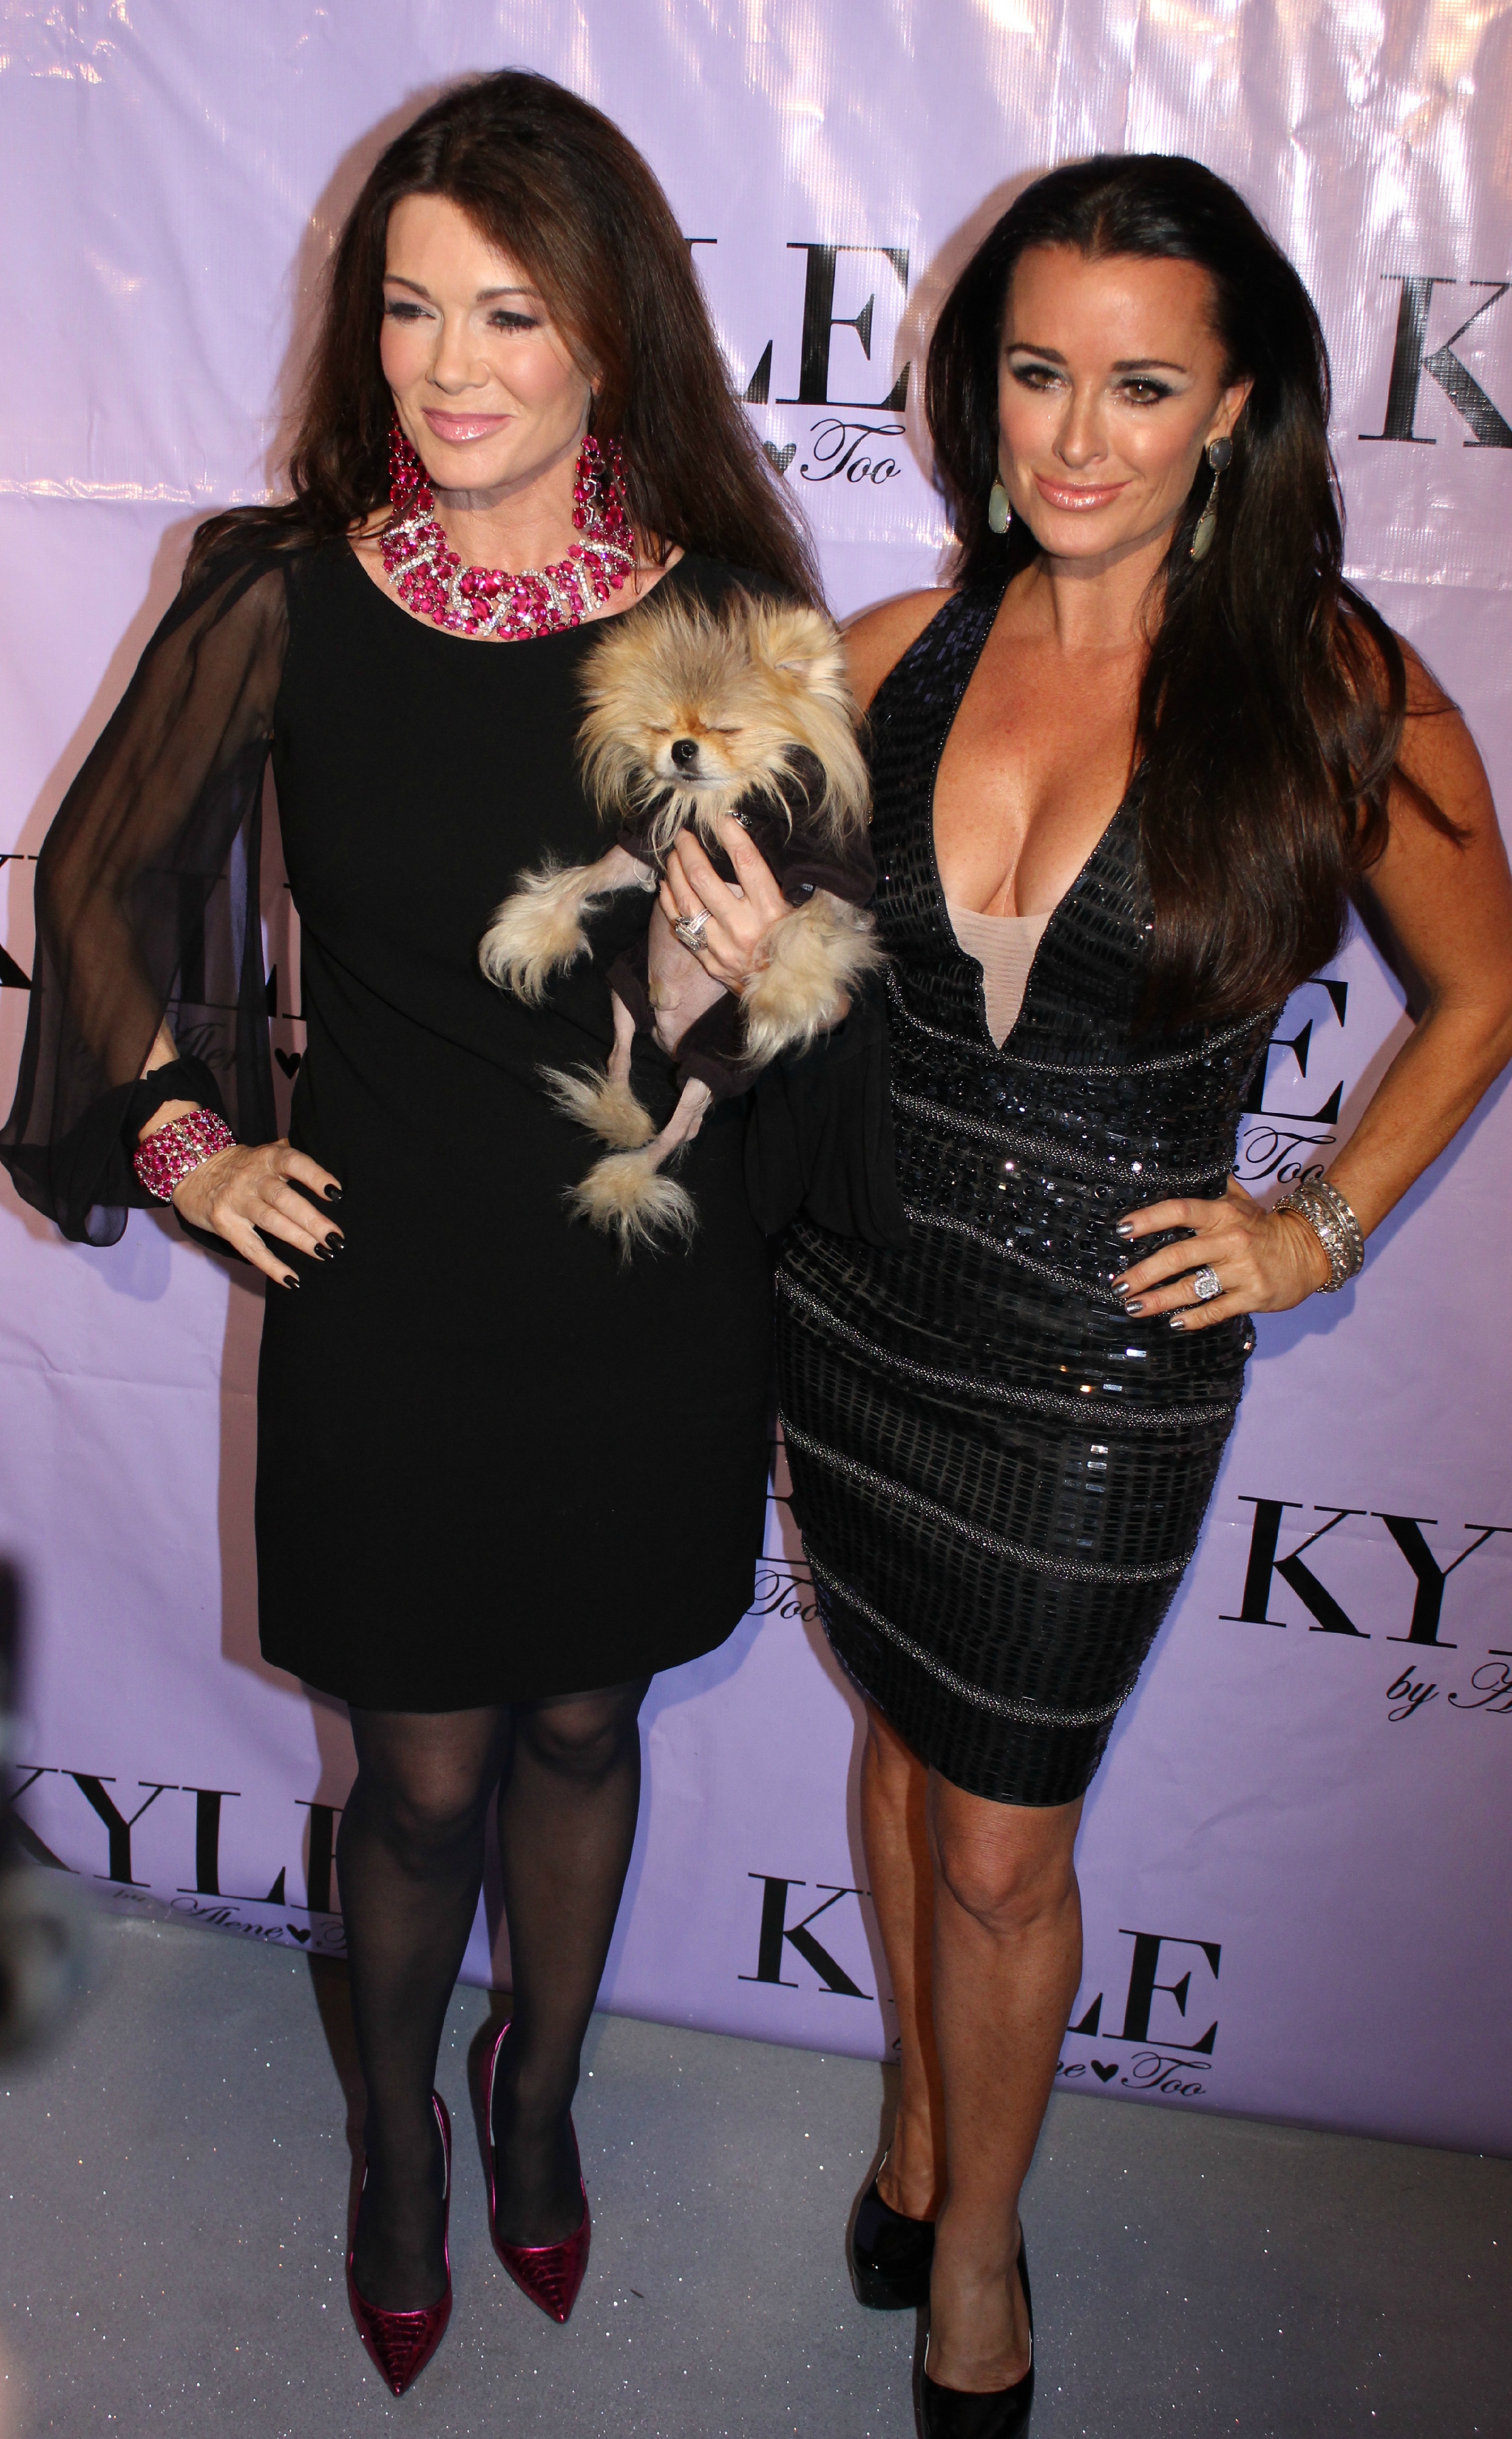 Kyle Richards Celebrates Boutique Grand Opening With Star